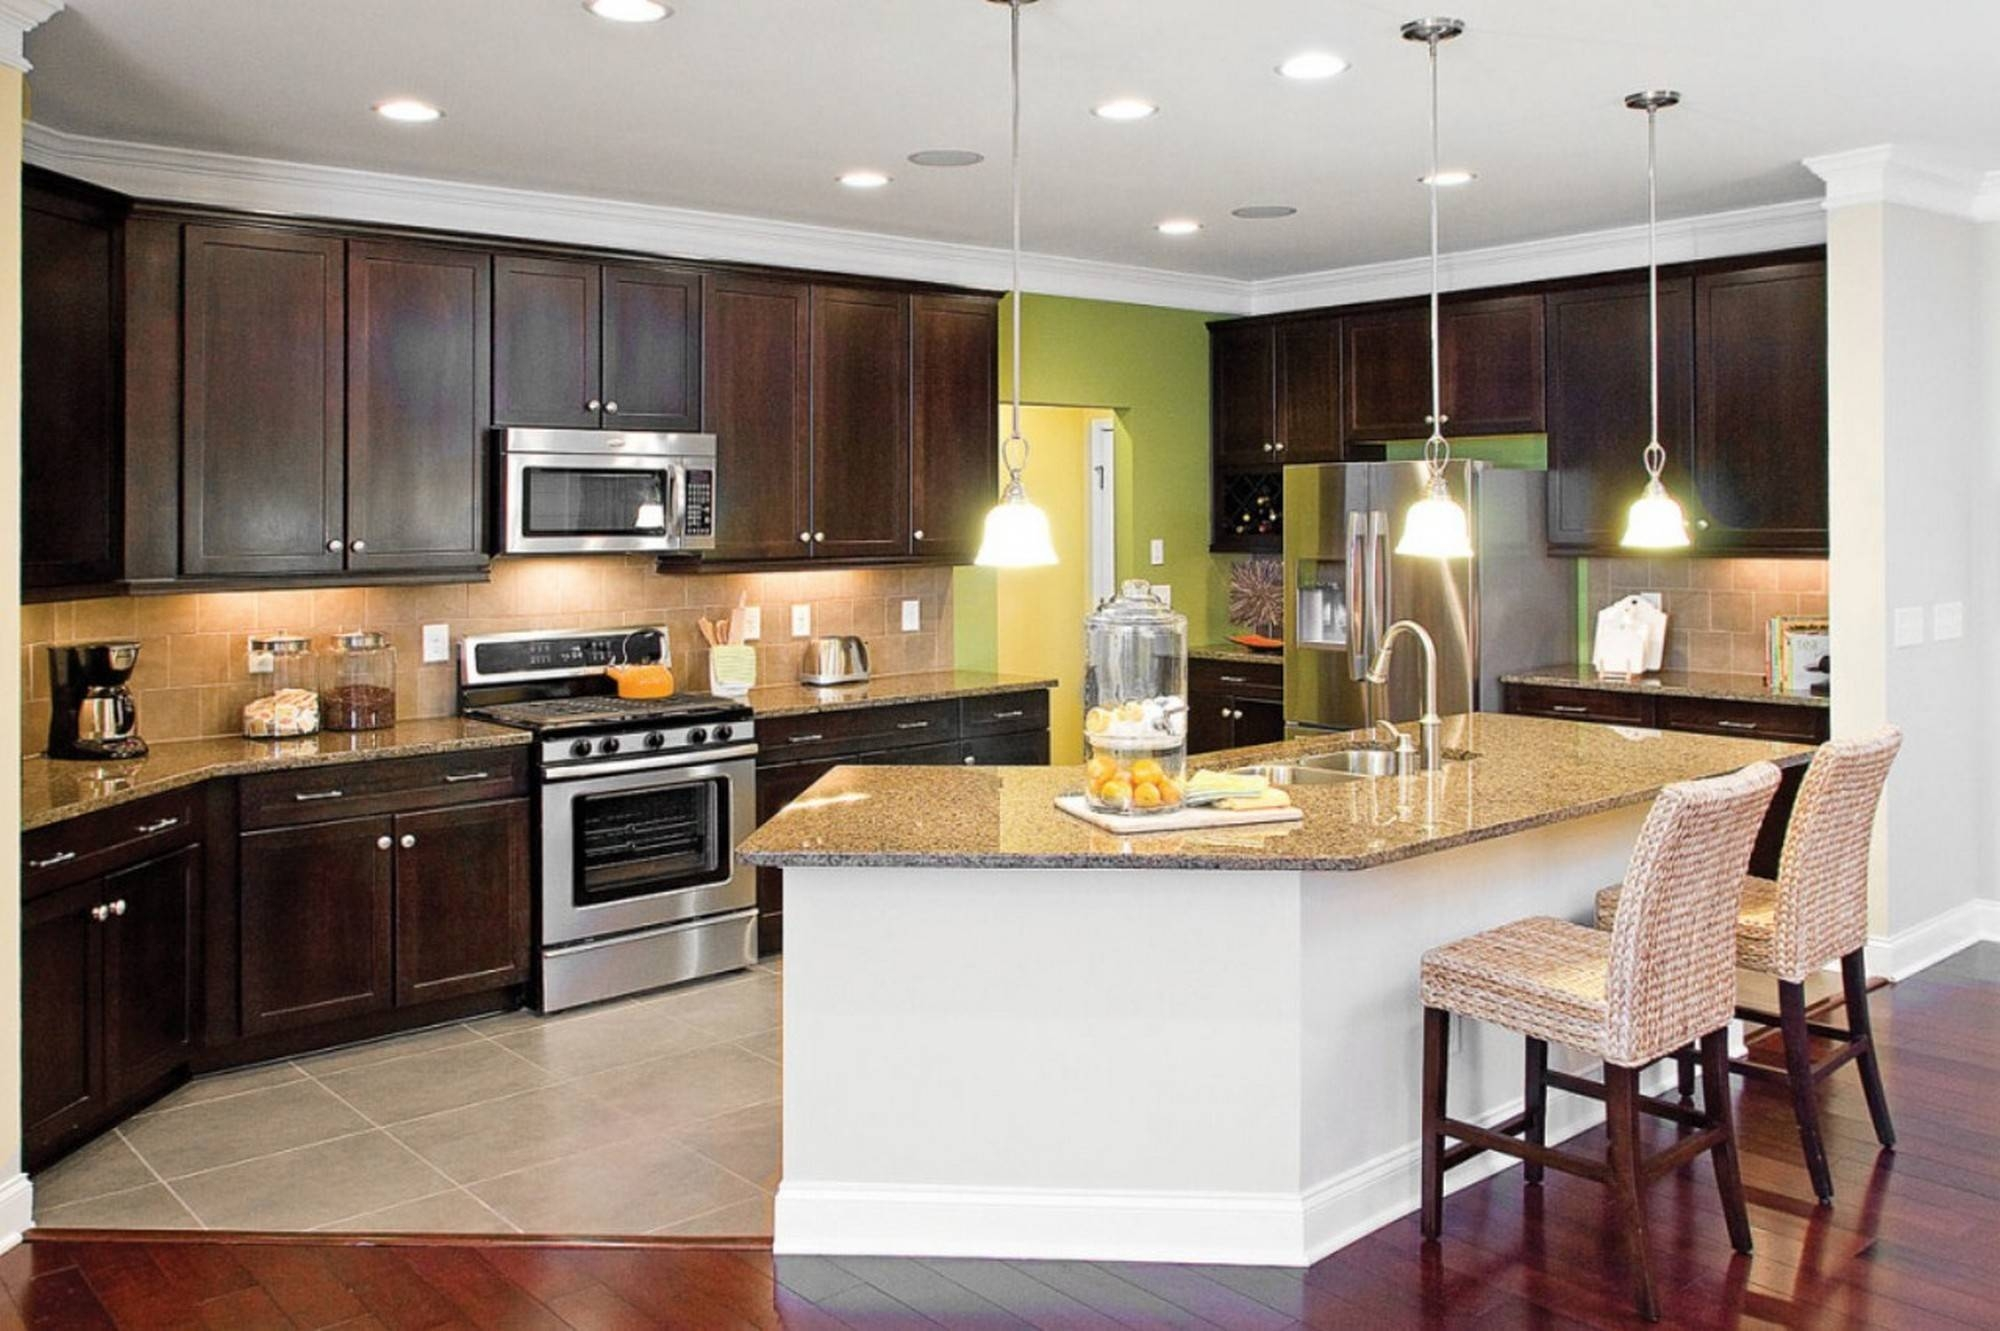 Mini Pendant Lights For Kitchen Island - Baby-Exit with Mini Pendants Lights for Kitchen Island (Image 9 of 15)